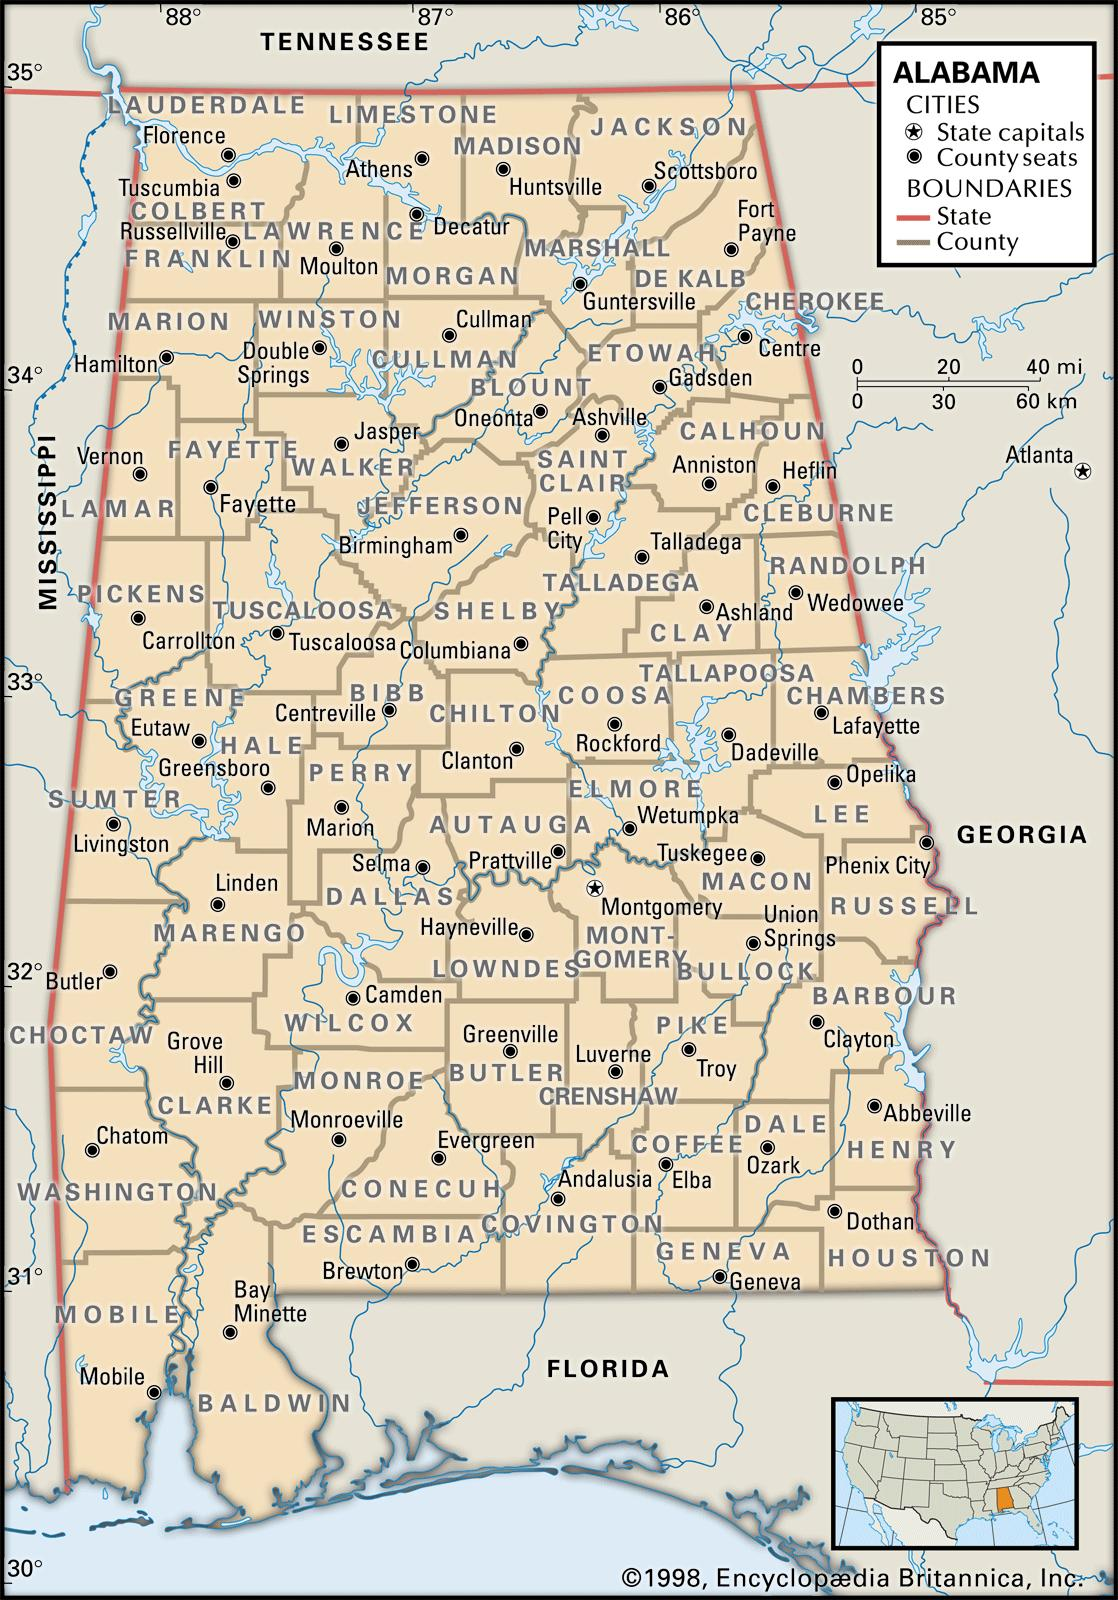 Alabama Maps And Atlases - Georgia map showing counties